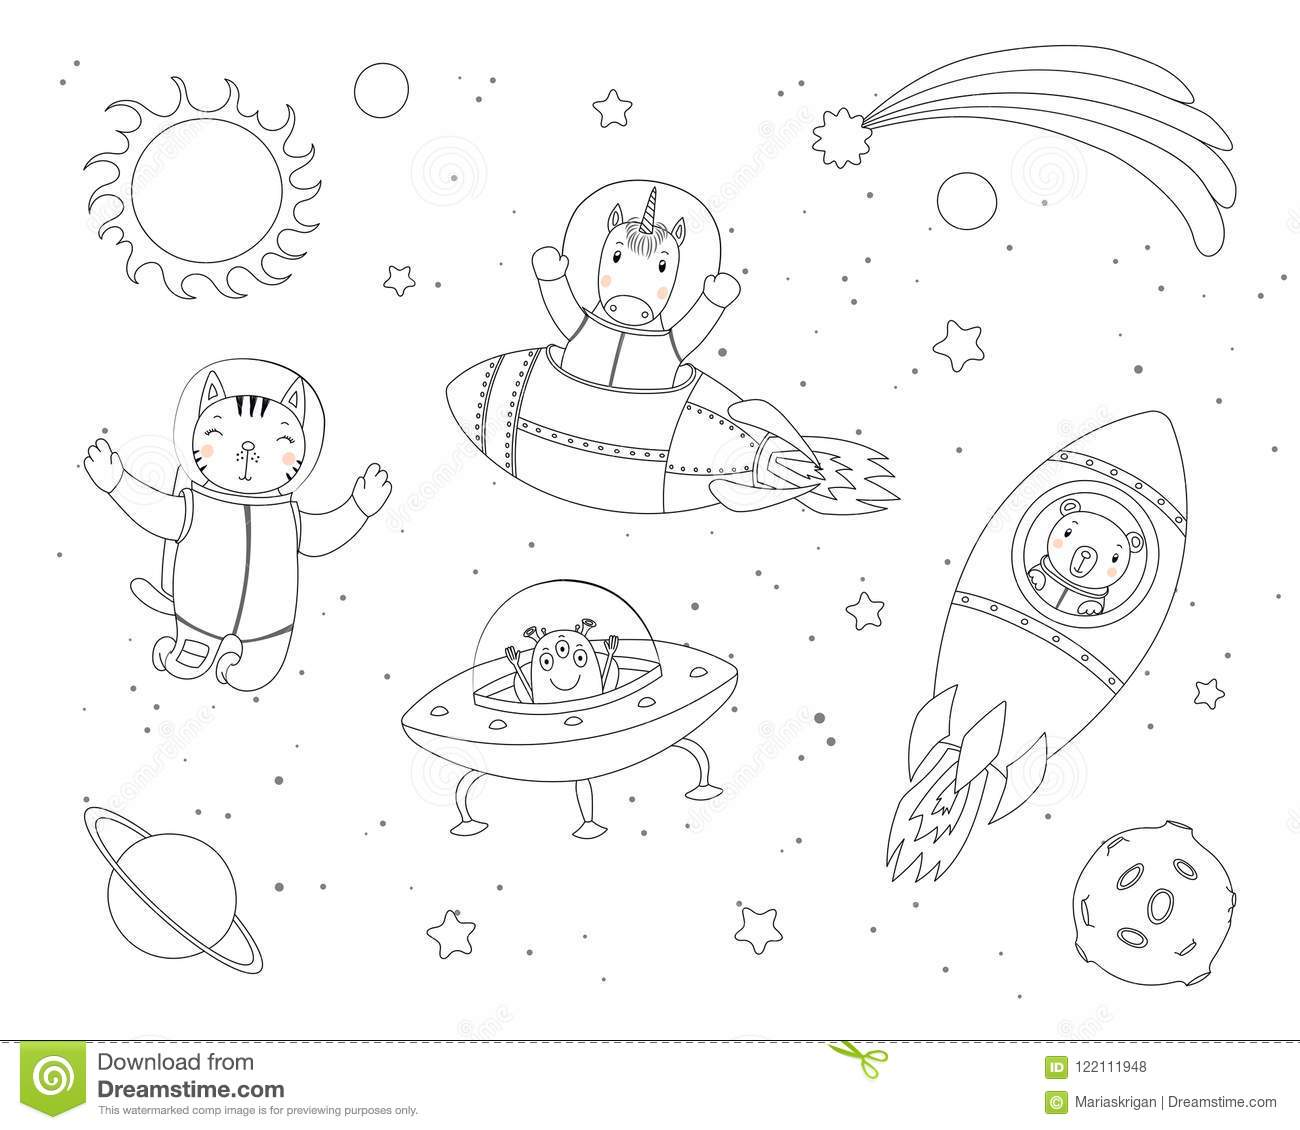 Cute animals in space coloring pages